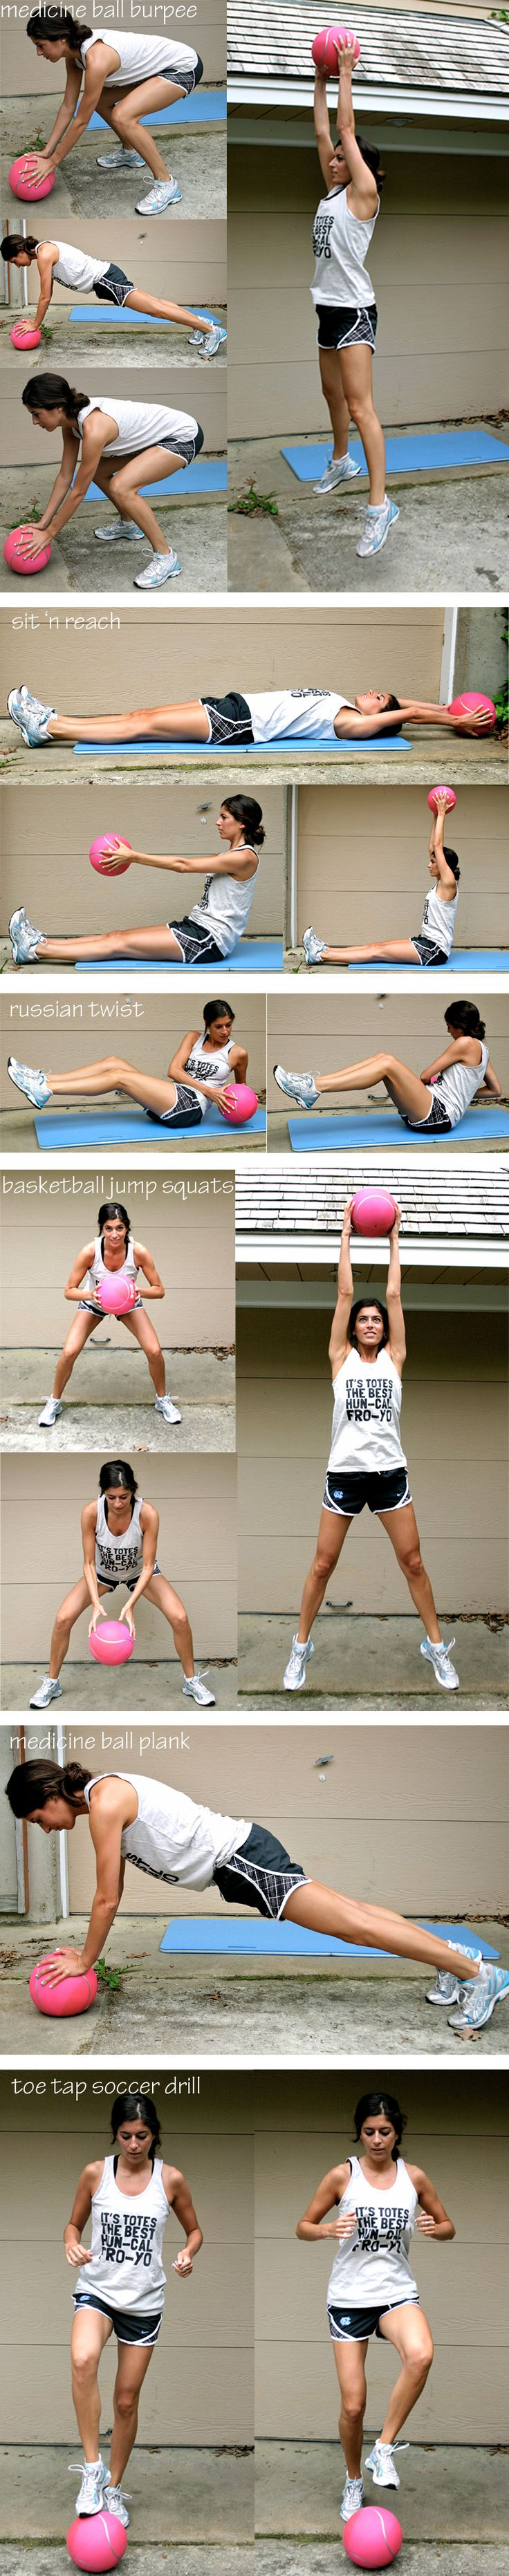 medicine ball interval workout. Med ball workouts are the best. If you